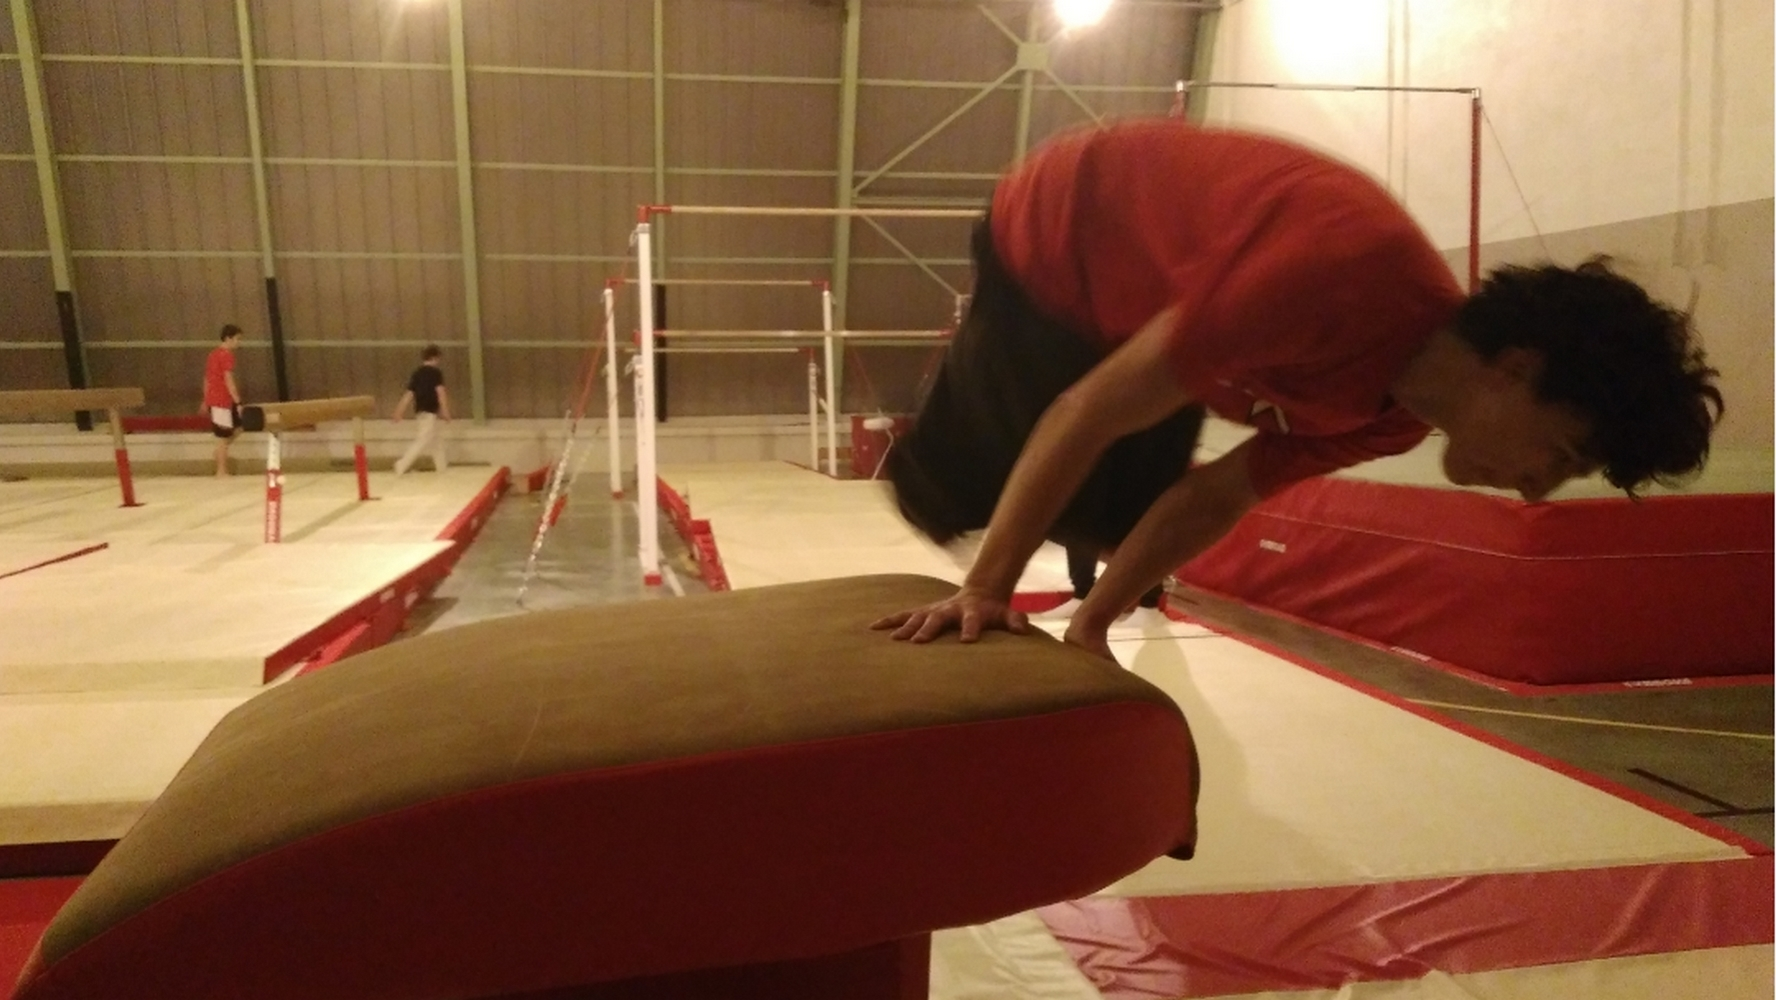 La gymnastique, indispensable au Parkour. ©CN